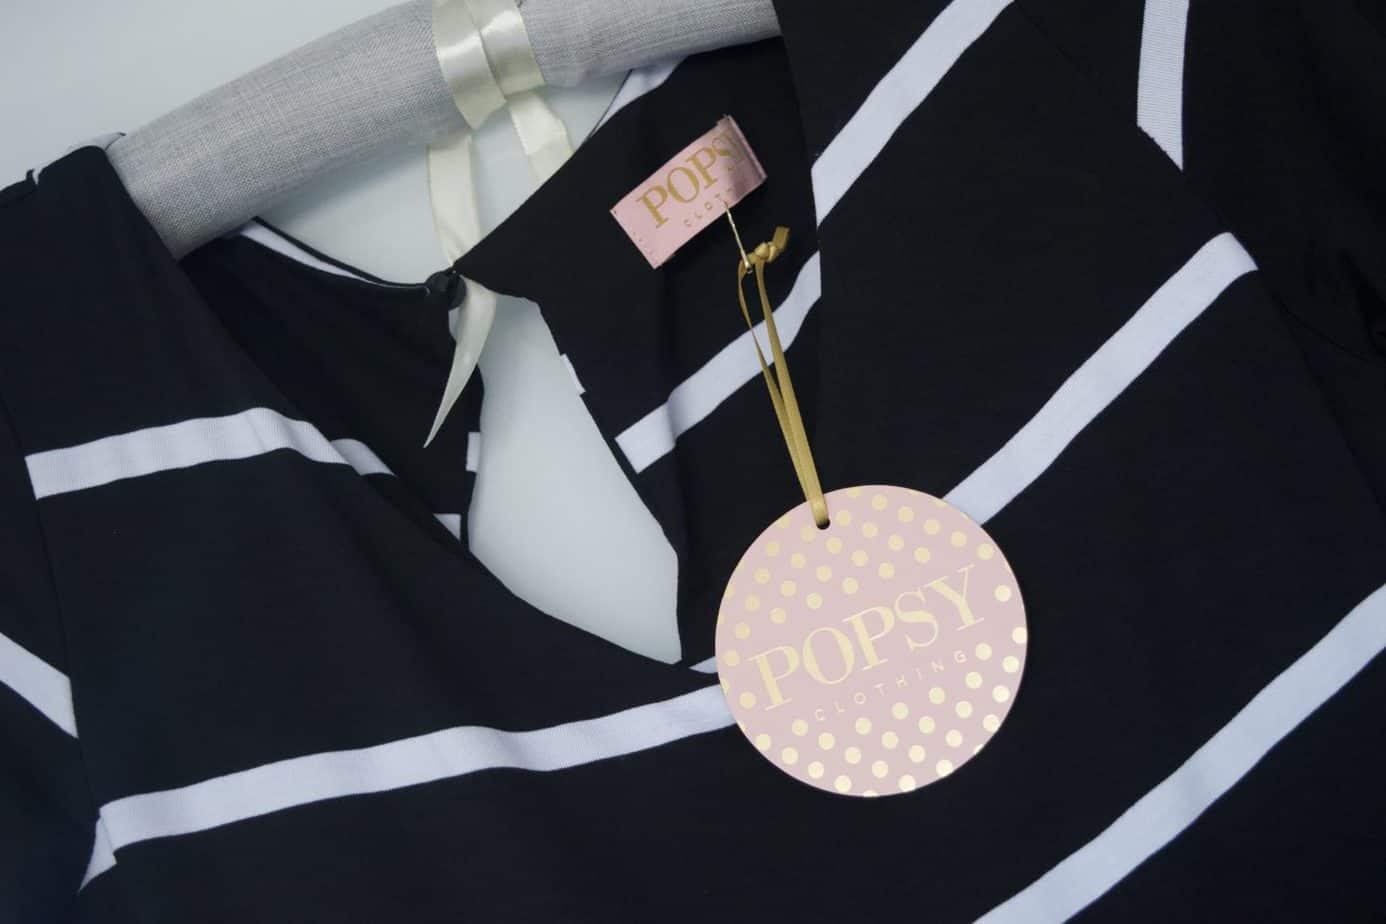 Close up of the Popsey clothing jumpsuit with the tag pink and gold